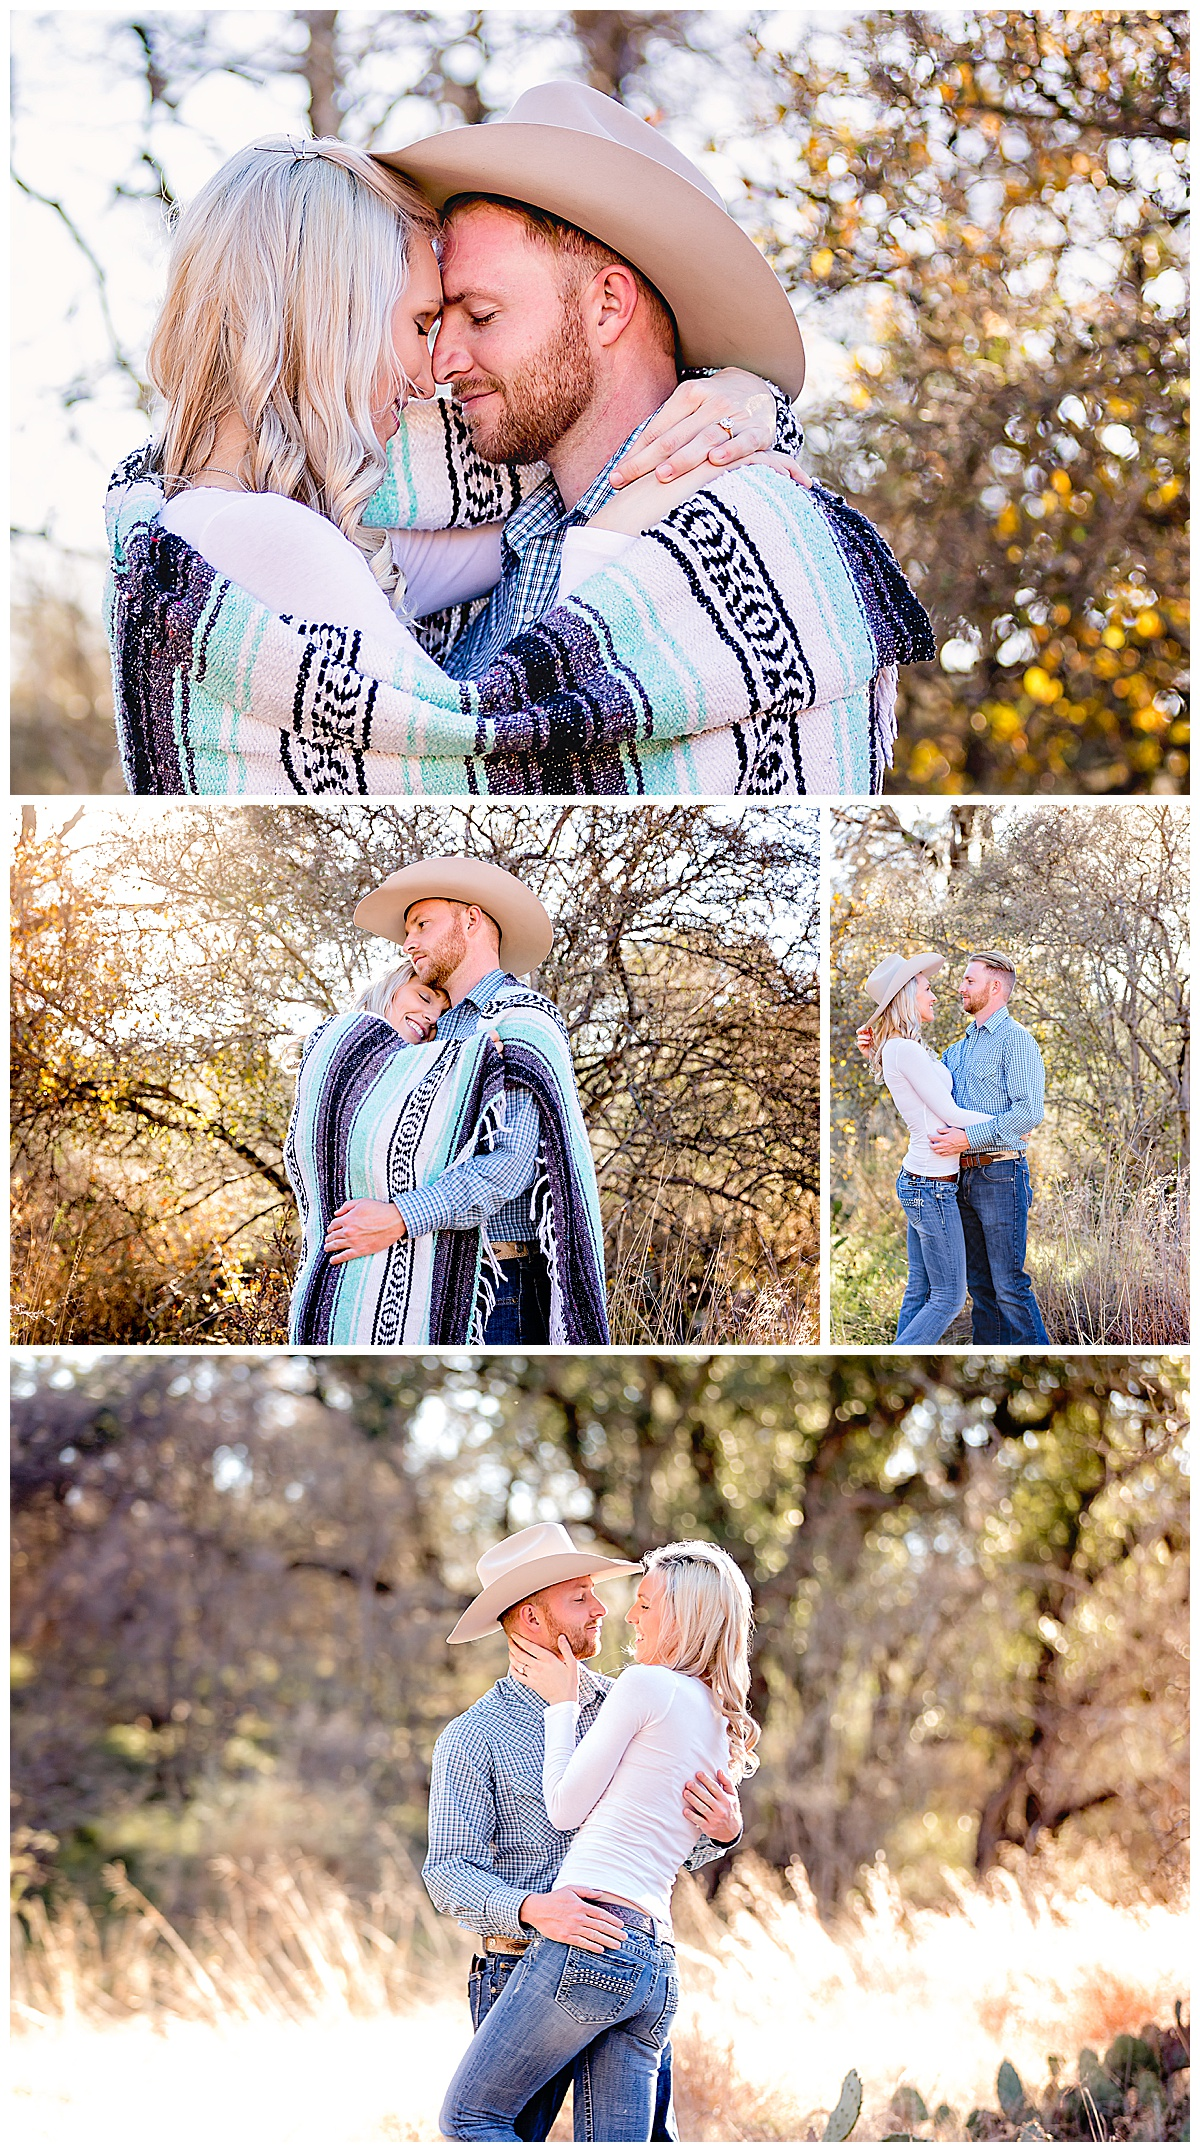 South-Texas-Wedding-Photographer-Engagement-Photos-Enchanted-Rock-Fredericksburg-Sunset-Couples-Carly-Barton-Photography_0017.jpg